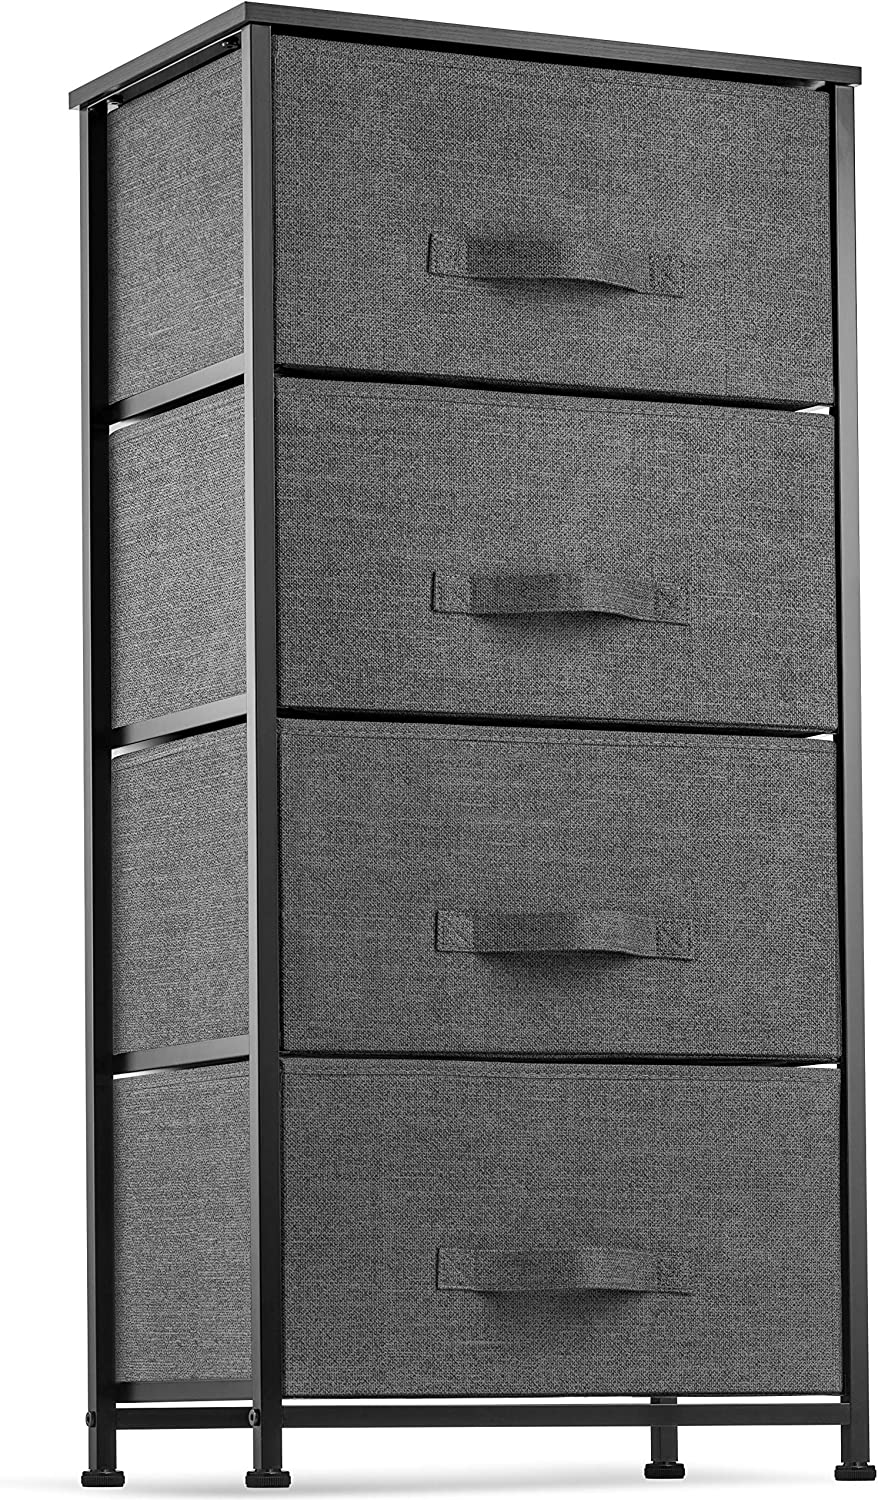 4 Drawer Dresser Organizer Tall Fabric Storage Tower for Bedroom, Hallway, Entryway, Closets, Nurseries. Furniture Storage Chest Sturdy Steel Frame, Wood Top, Easy Pull Handle Textured Print Drawers